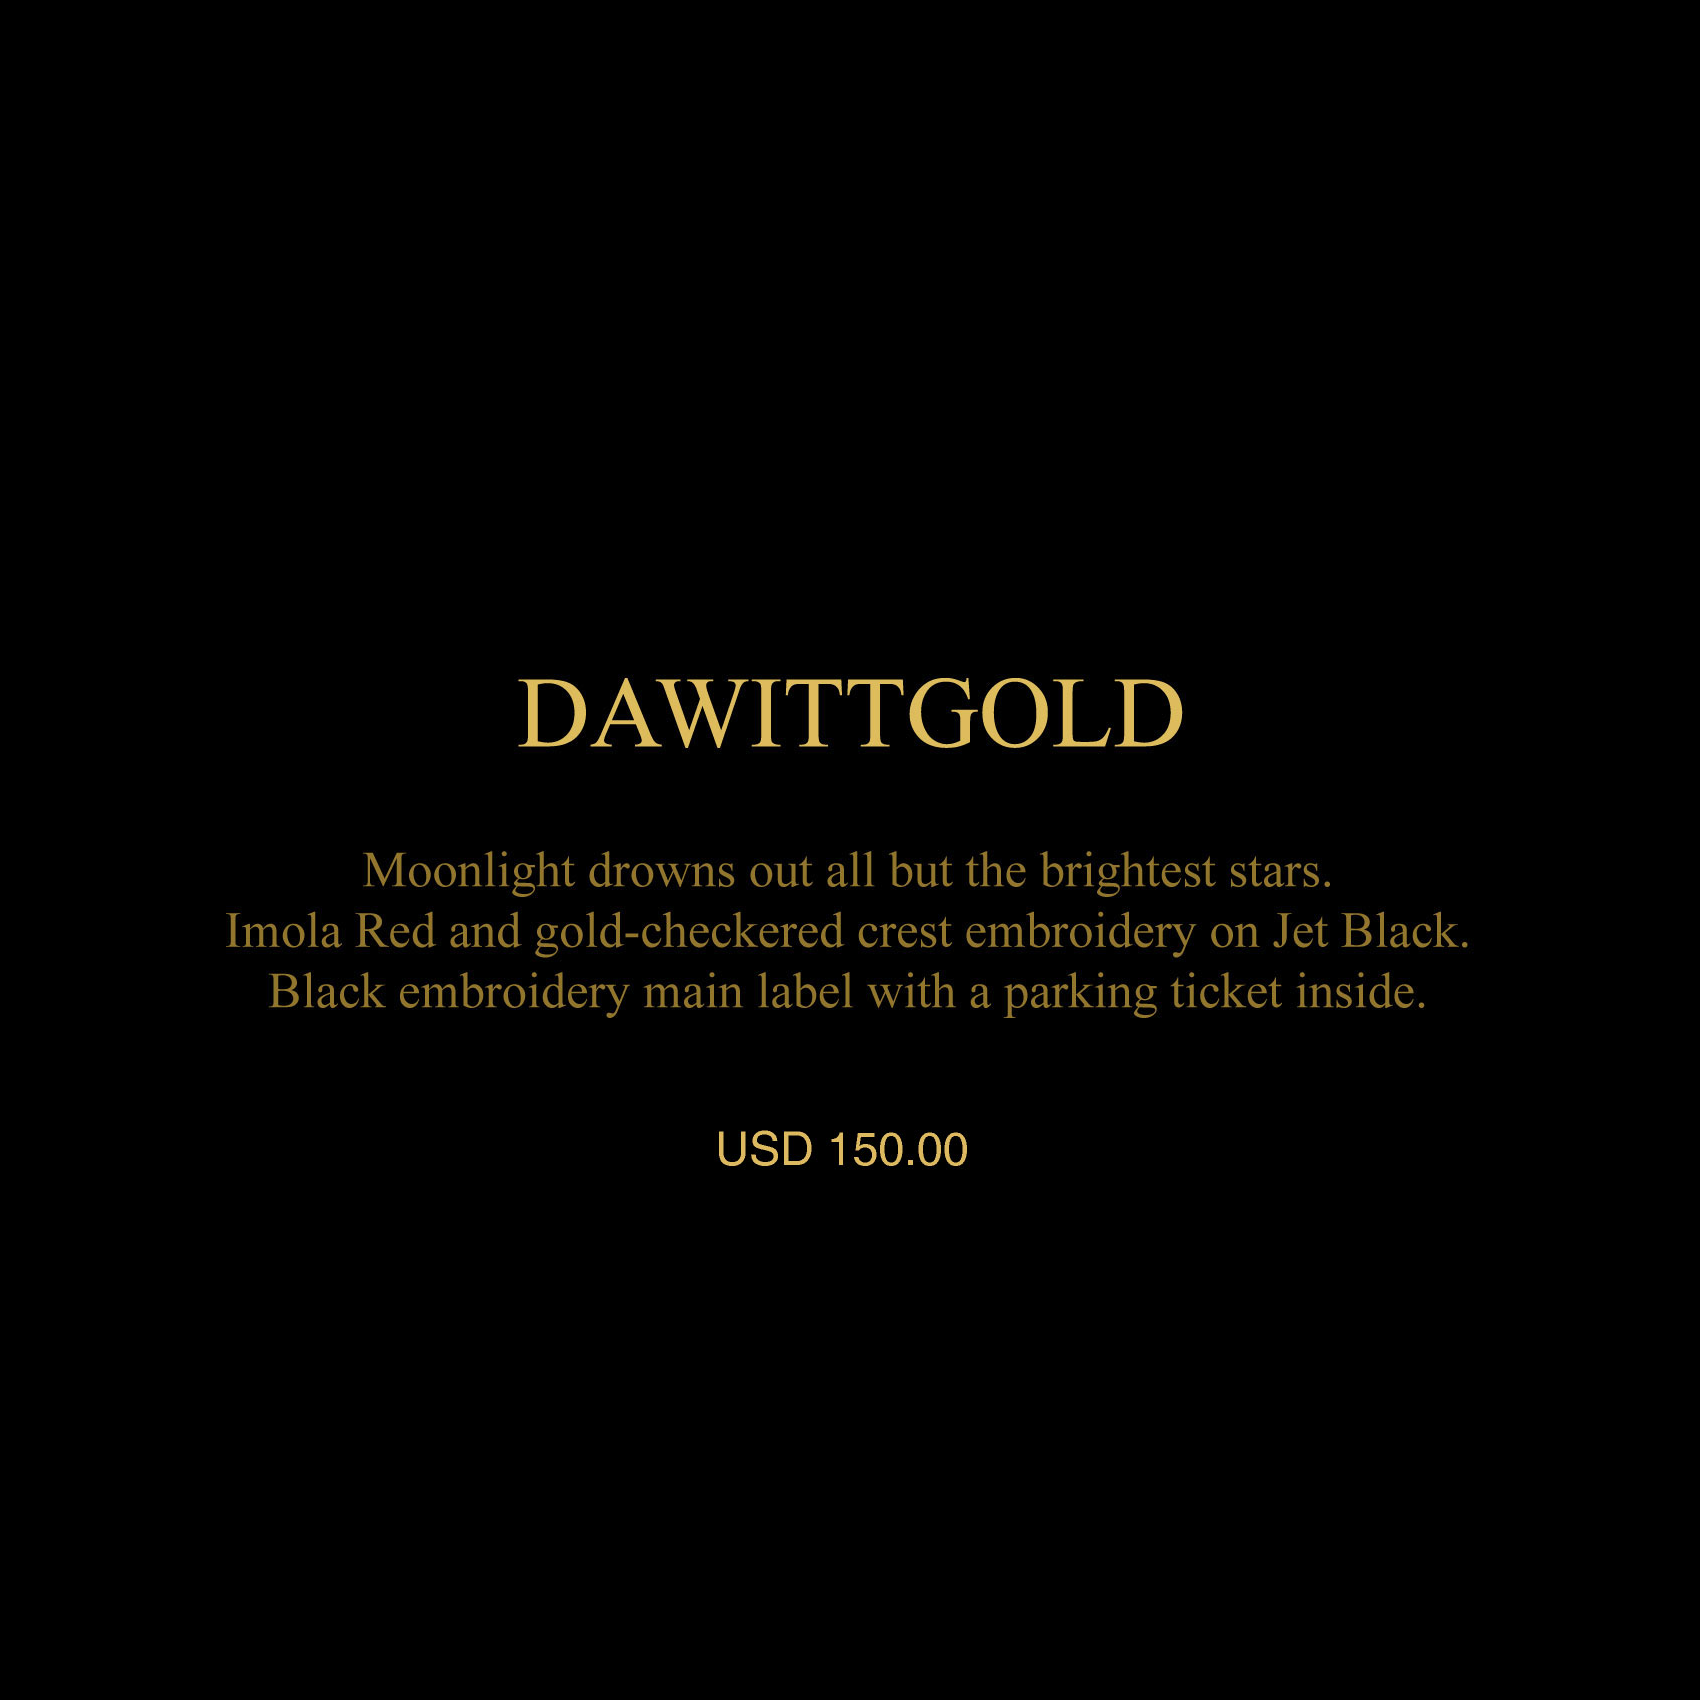 DAWITTGOLD.png